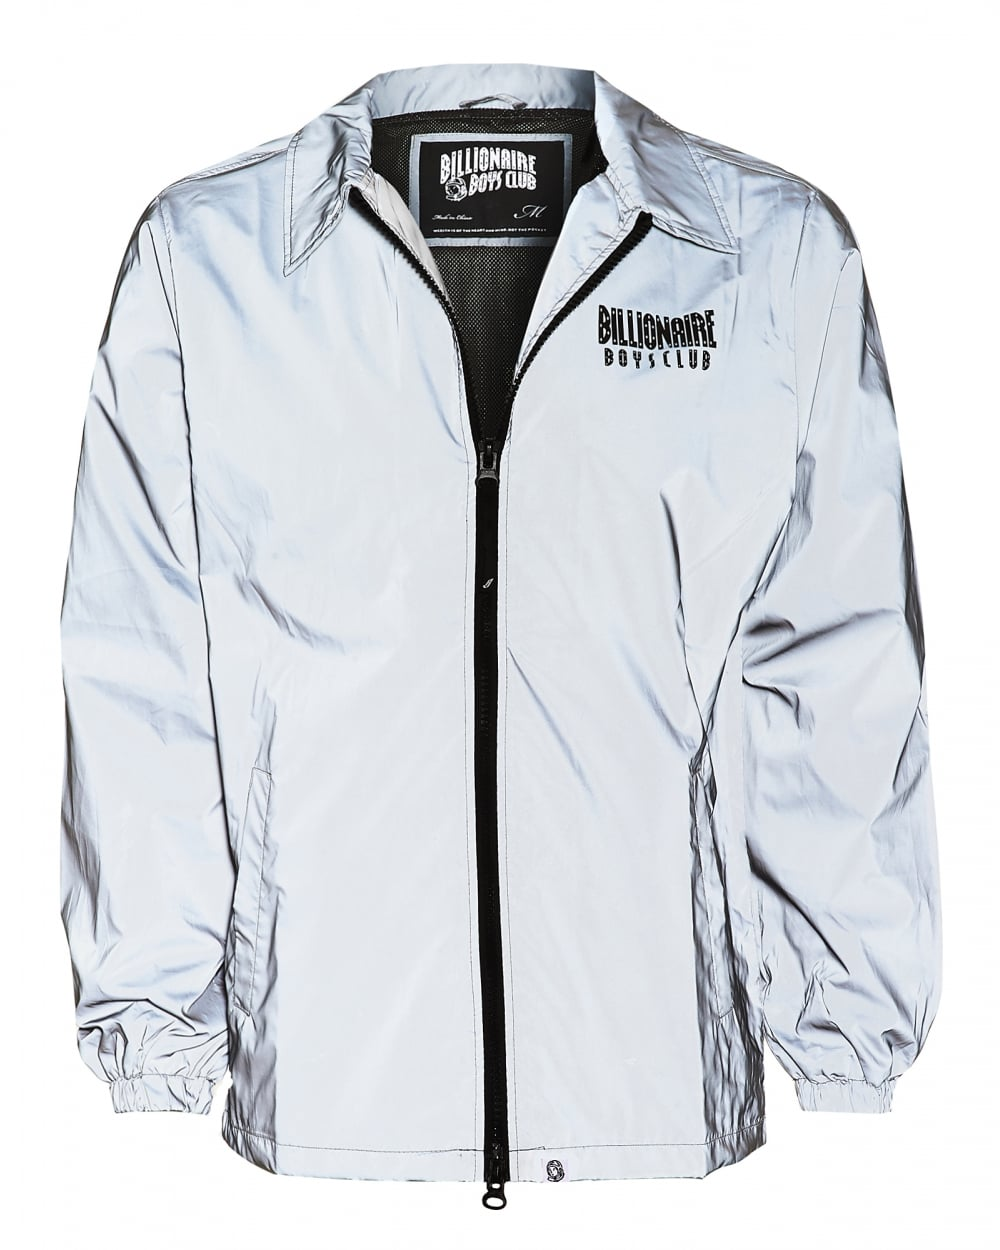 Billionaire Boys Club Mens Front And Back Logo Reflective Grey Jacket 25169ce52217